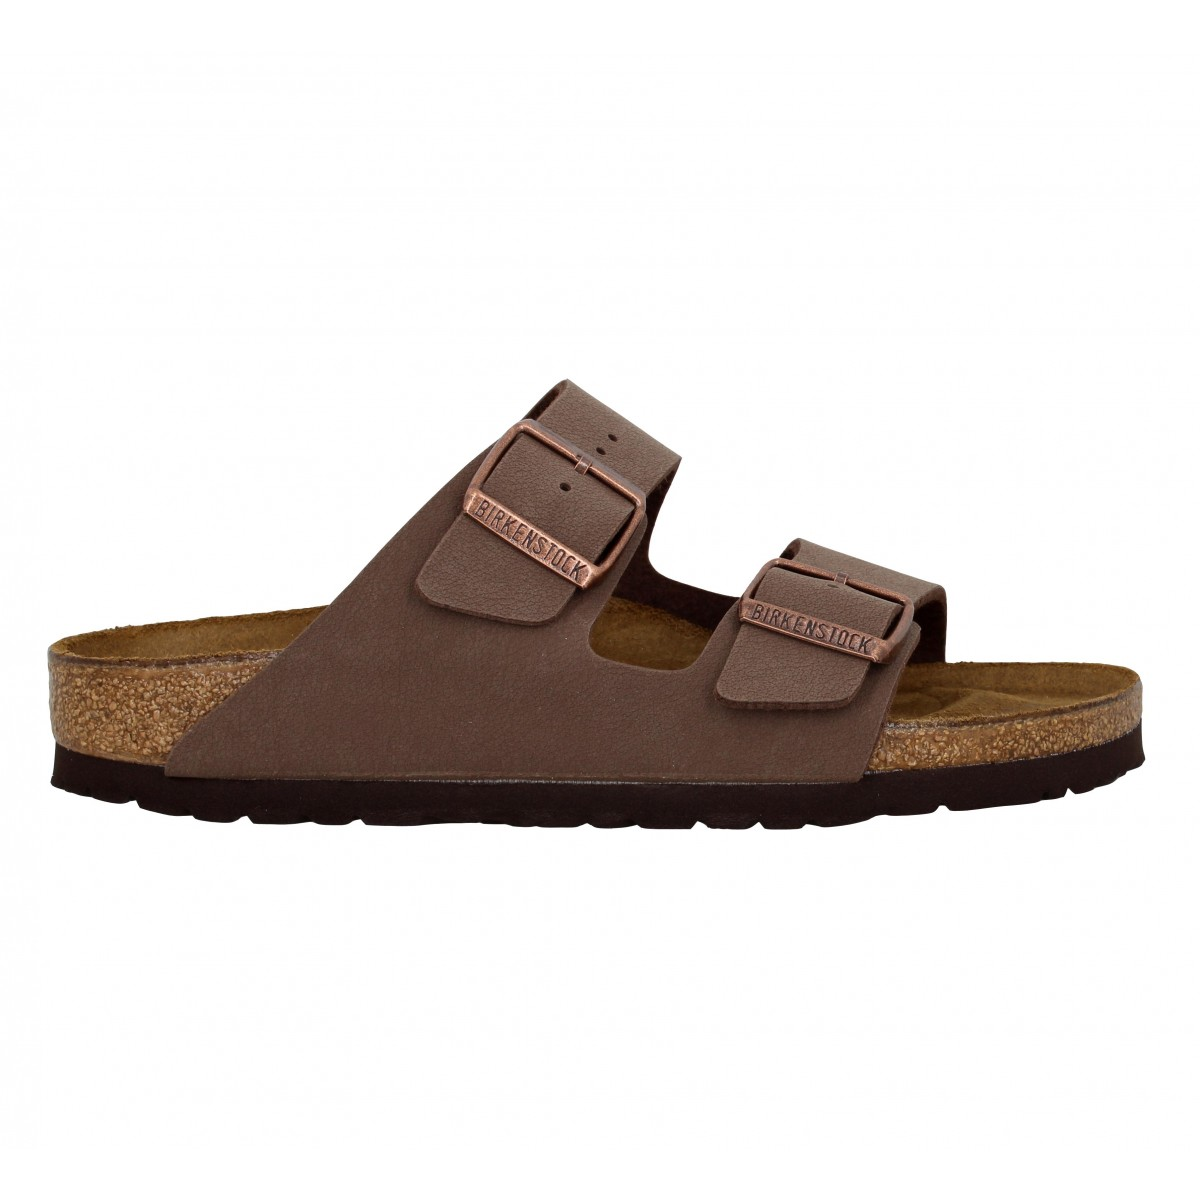 soldes birkenstock arizona birko flor homme marron fanny chaussures. Black Bedroom Furniture Sets. Home Design Ideas